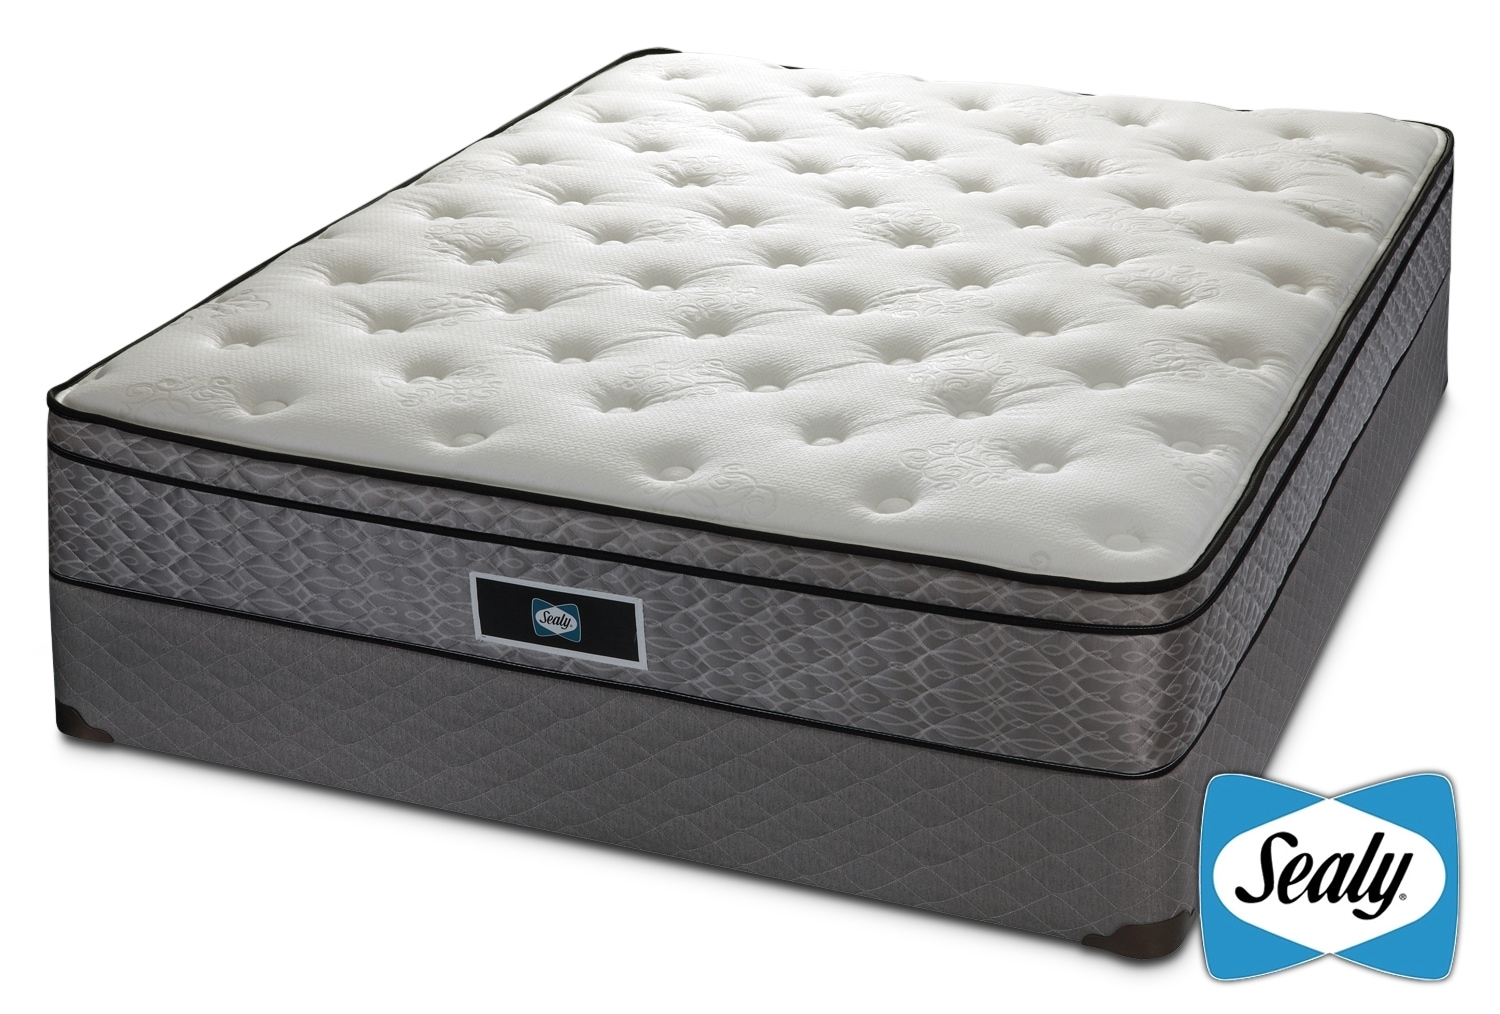 Split queen mattress sale bed mattress sale Queen mattress sale